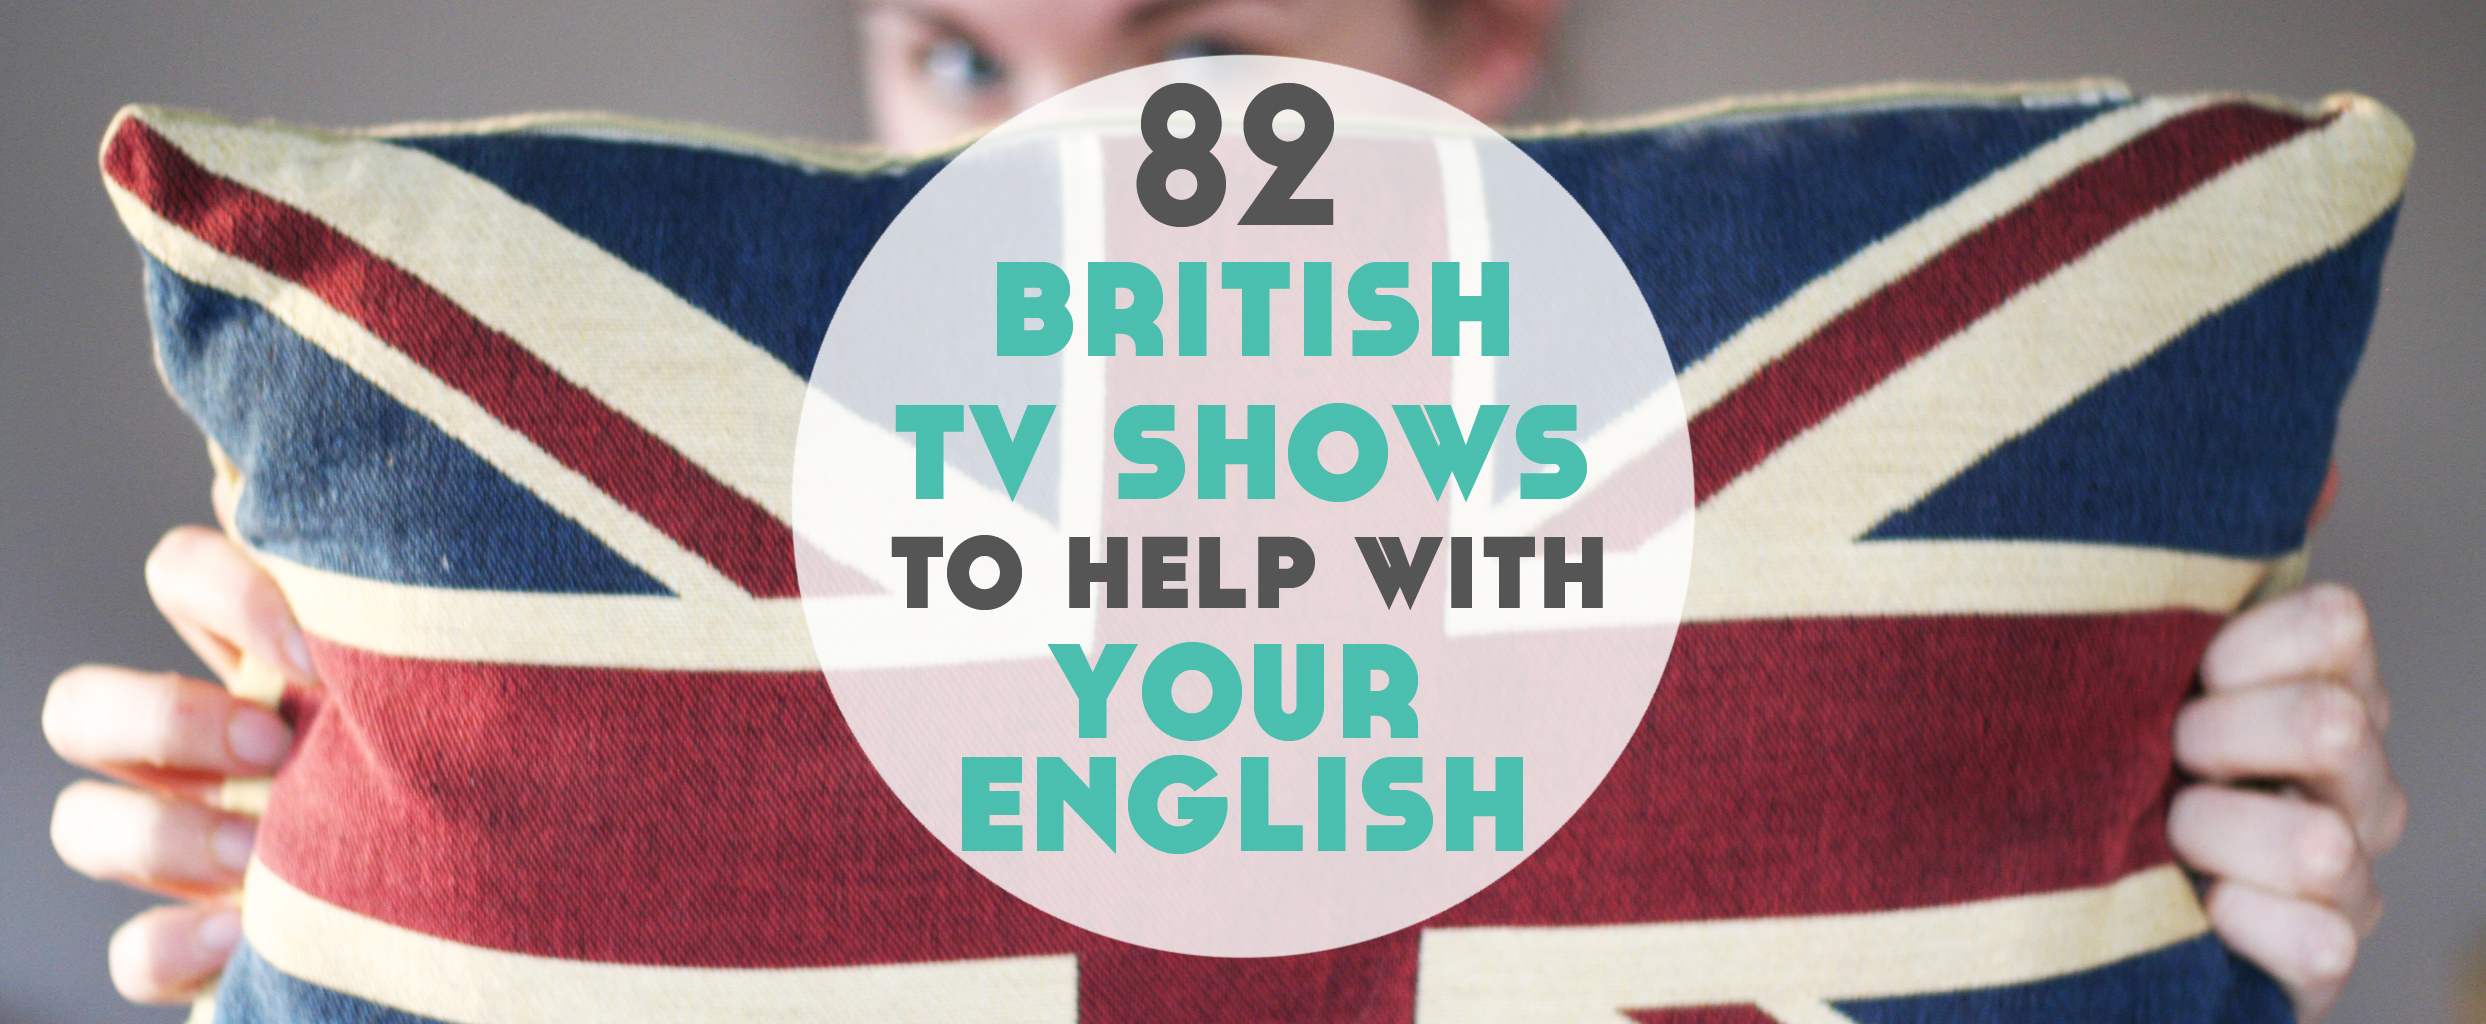 82 British TV Shows to Help with Your English - Lindsay Does Languages